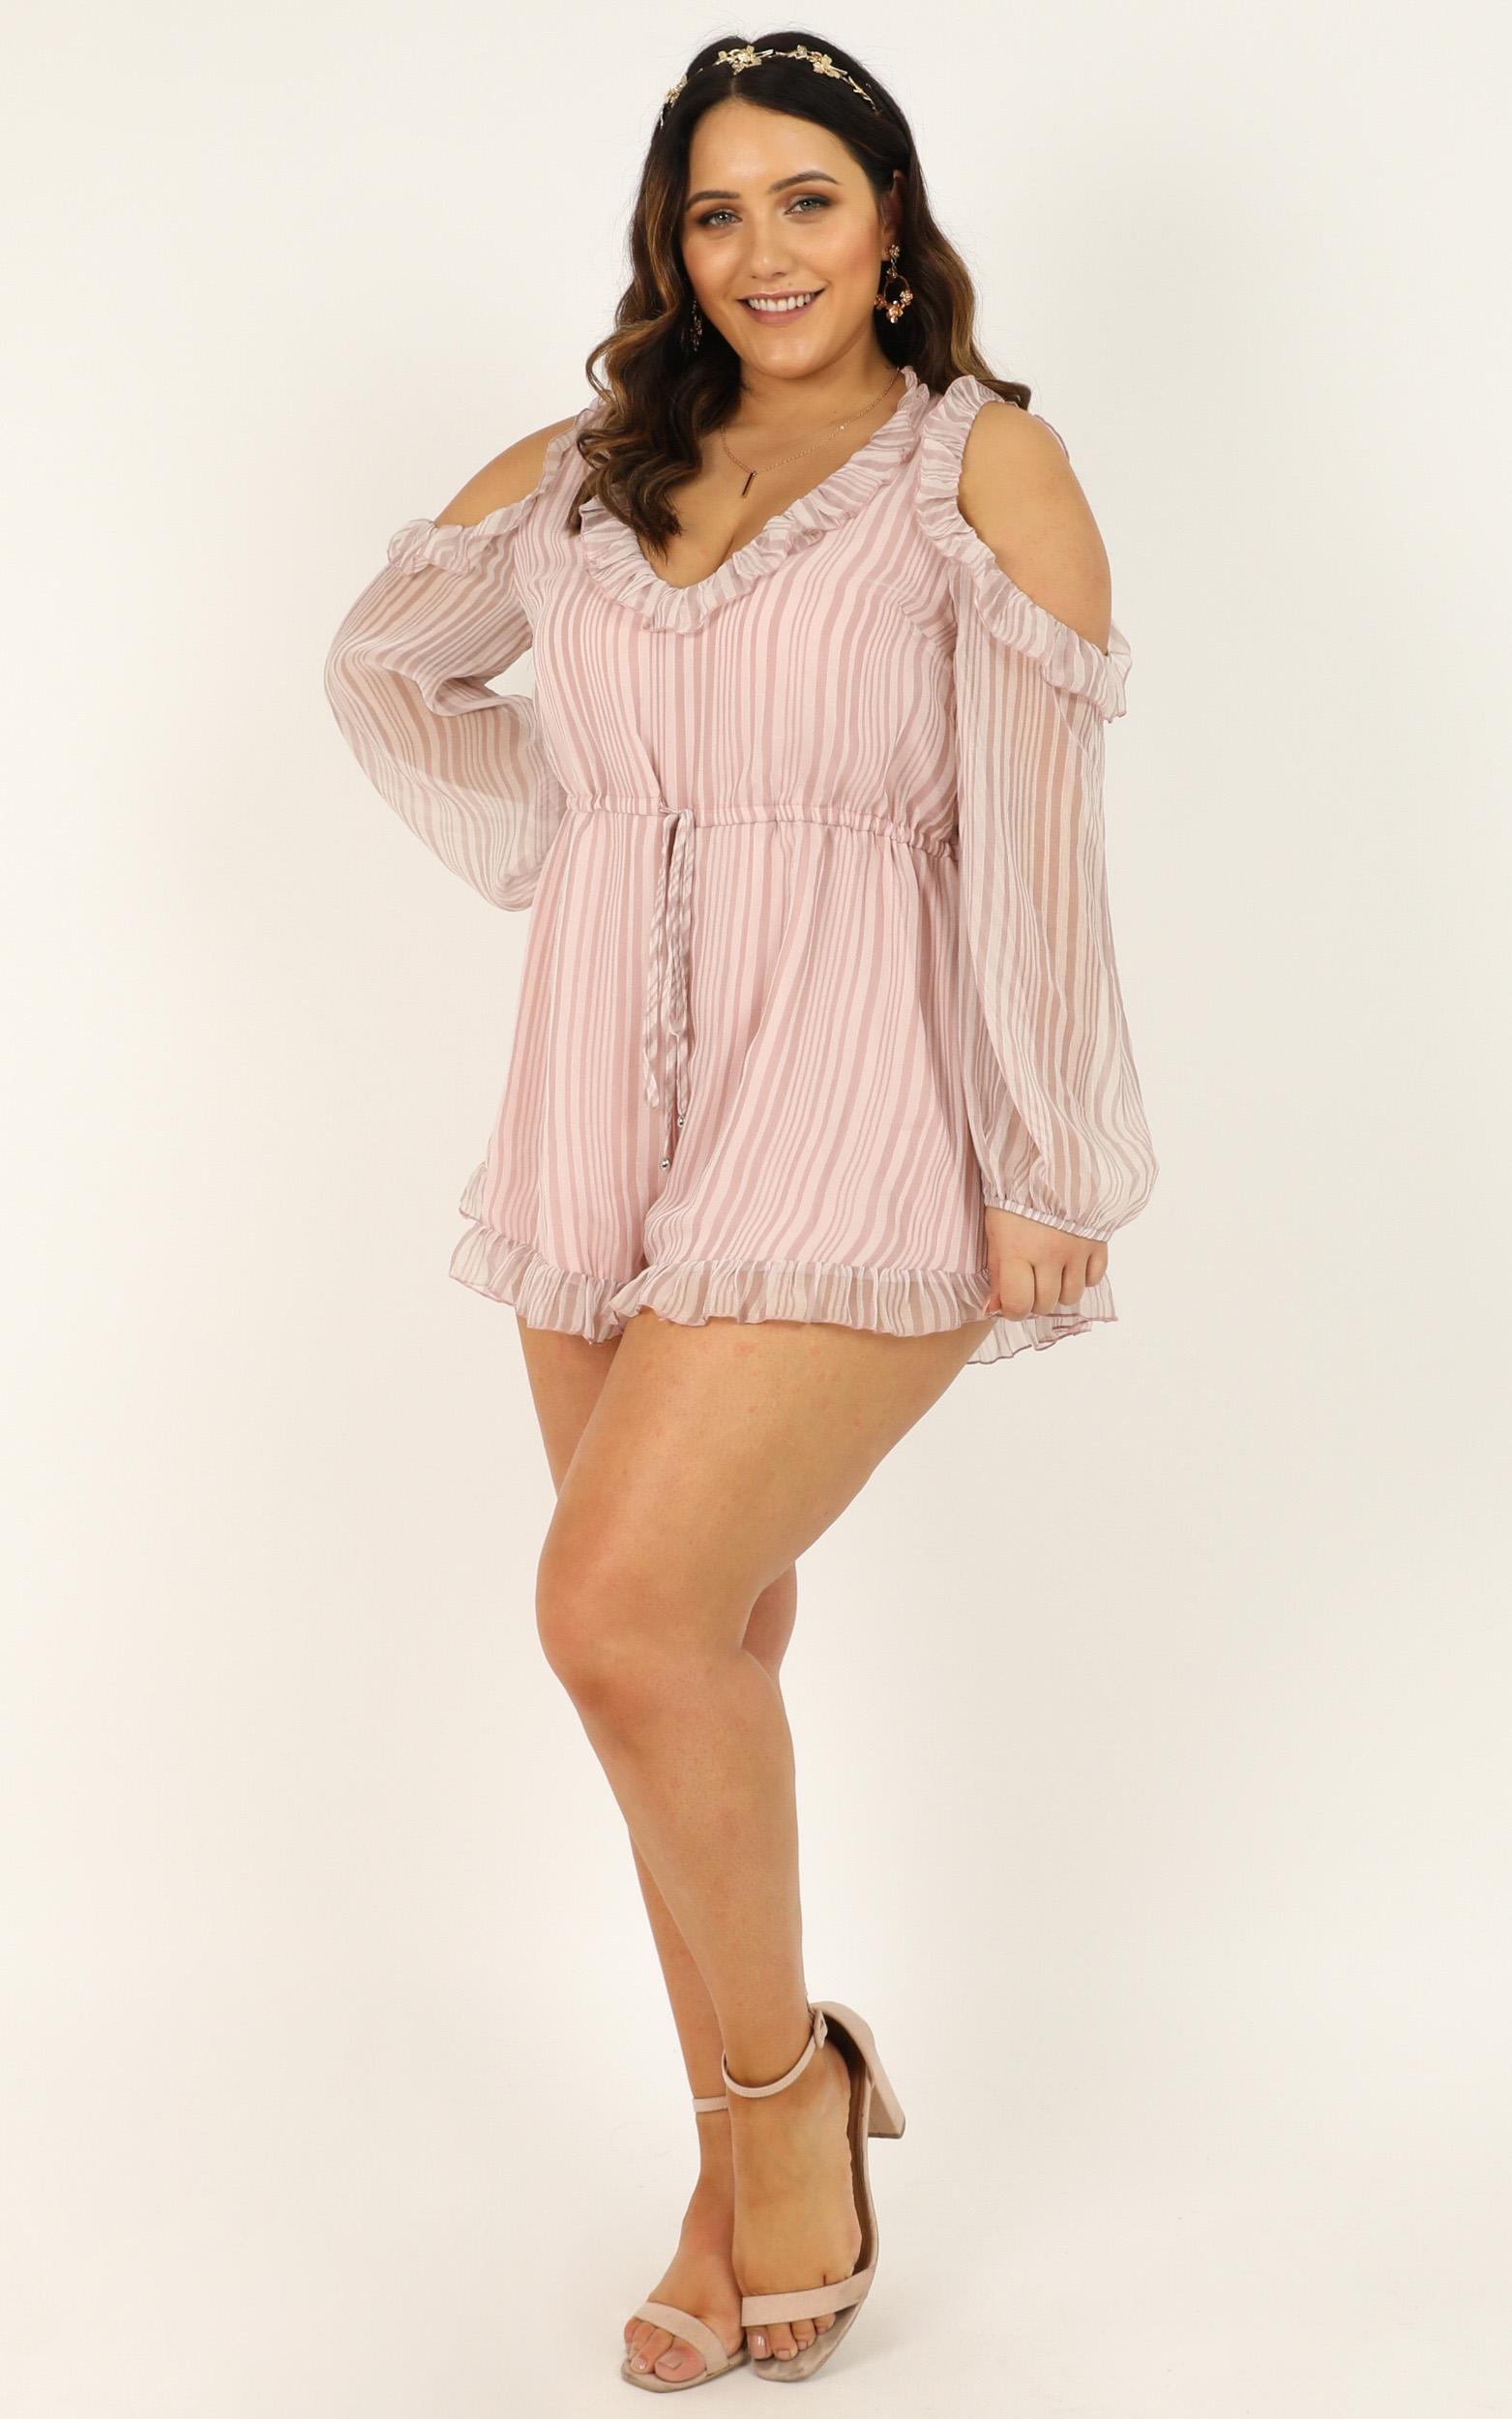 Rhythm And Love Playsuit in blush chiffon stripe - 20 (XXXXL), Blush, hi-res image number null